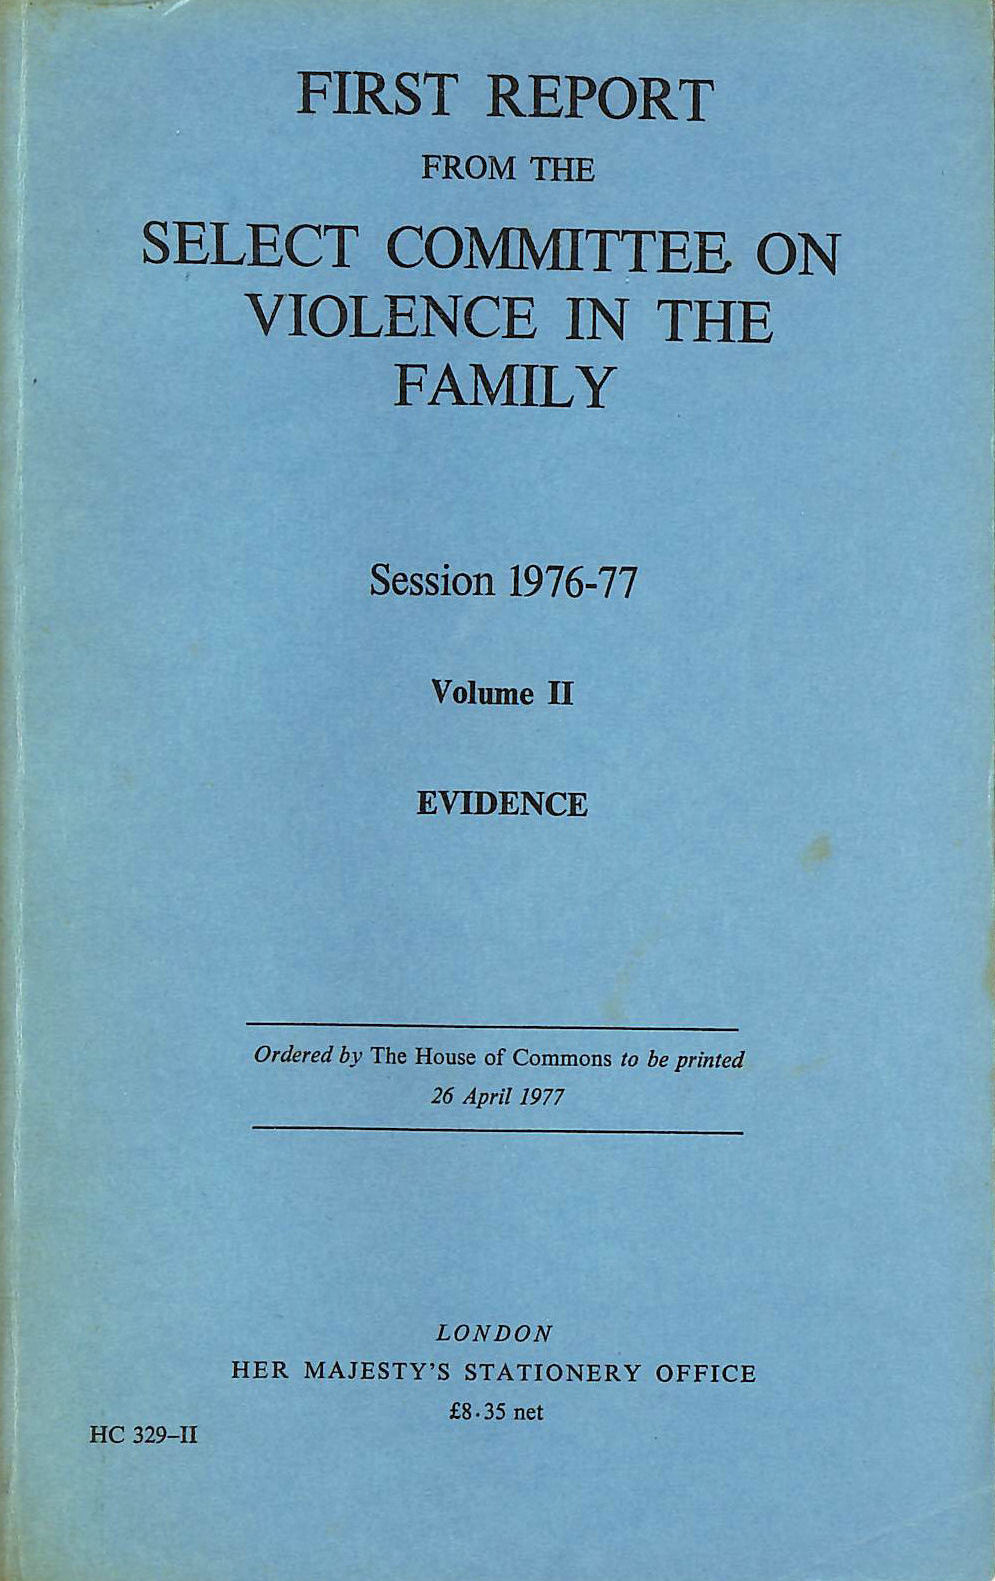 Image for First Report from the Select Committee on Violence in the Family, Session 1976-77. Volume II: Evidence